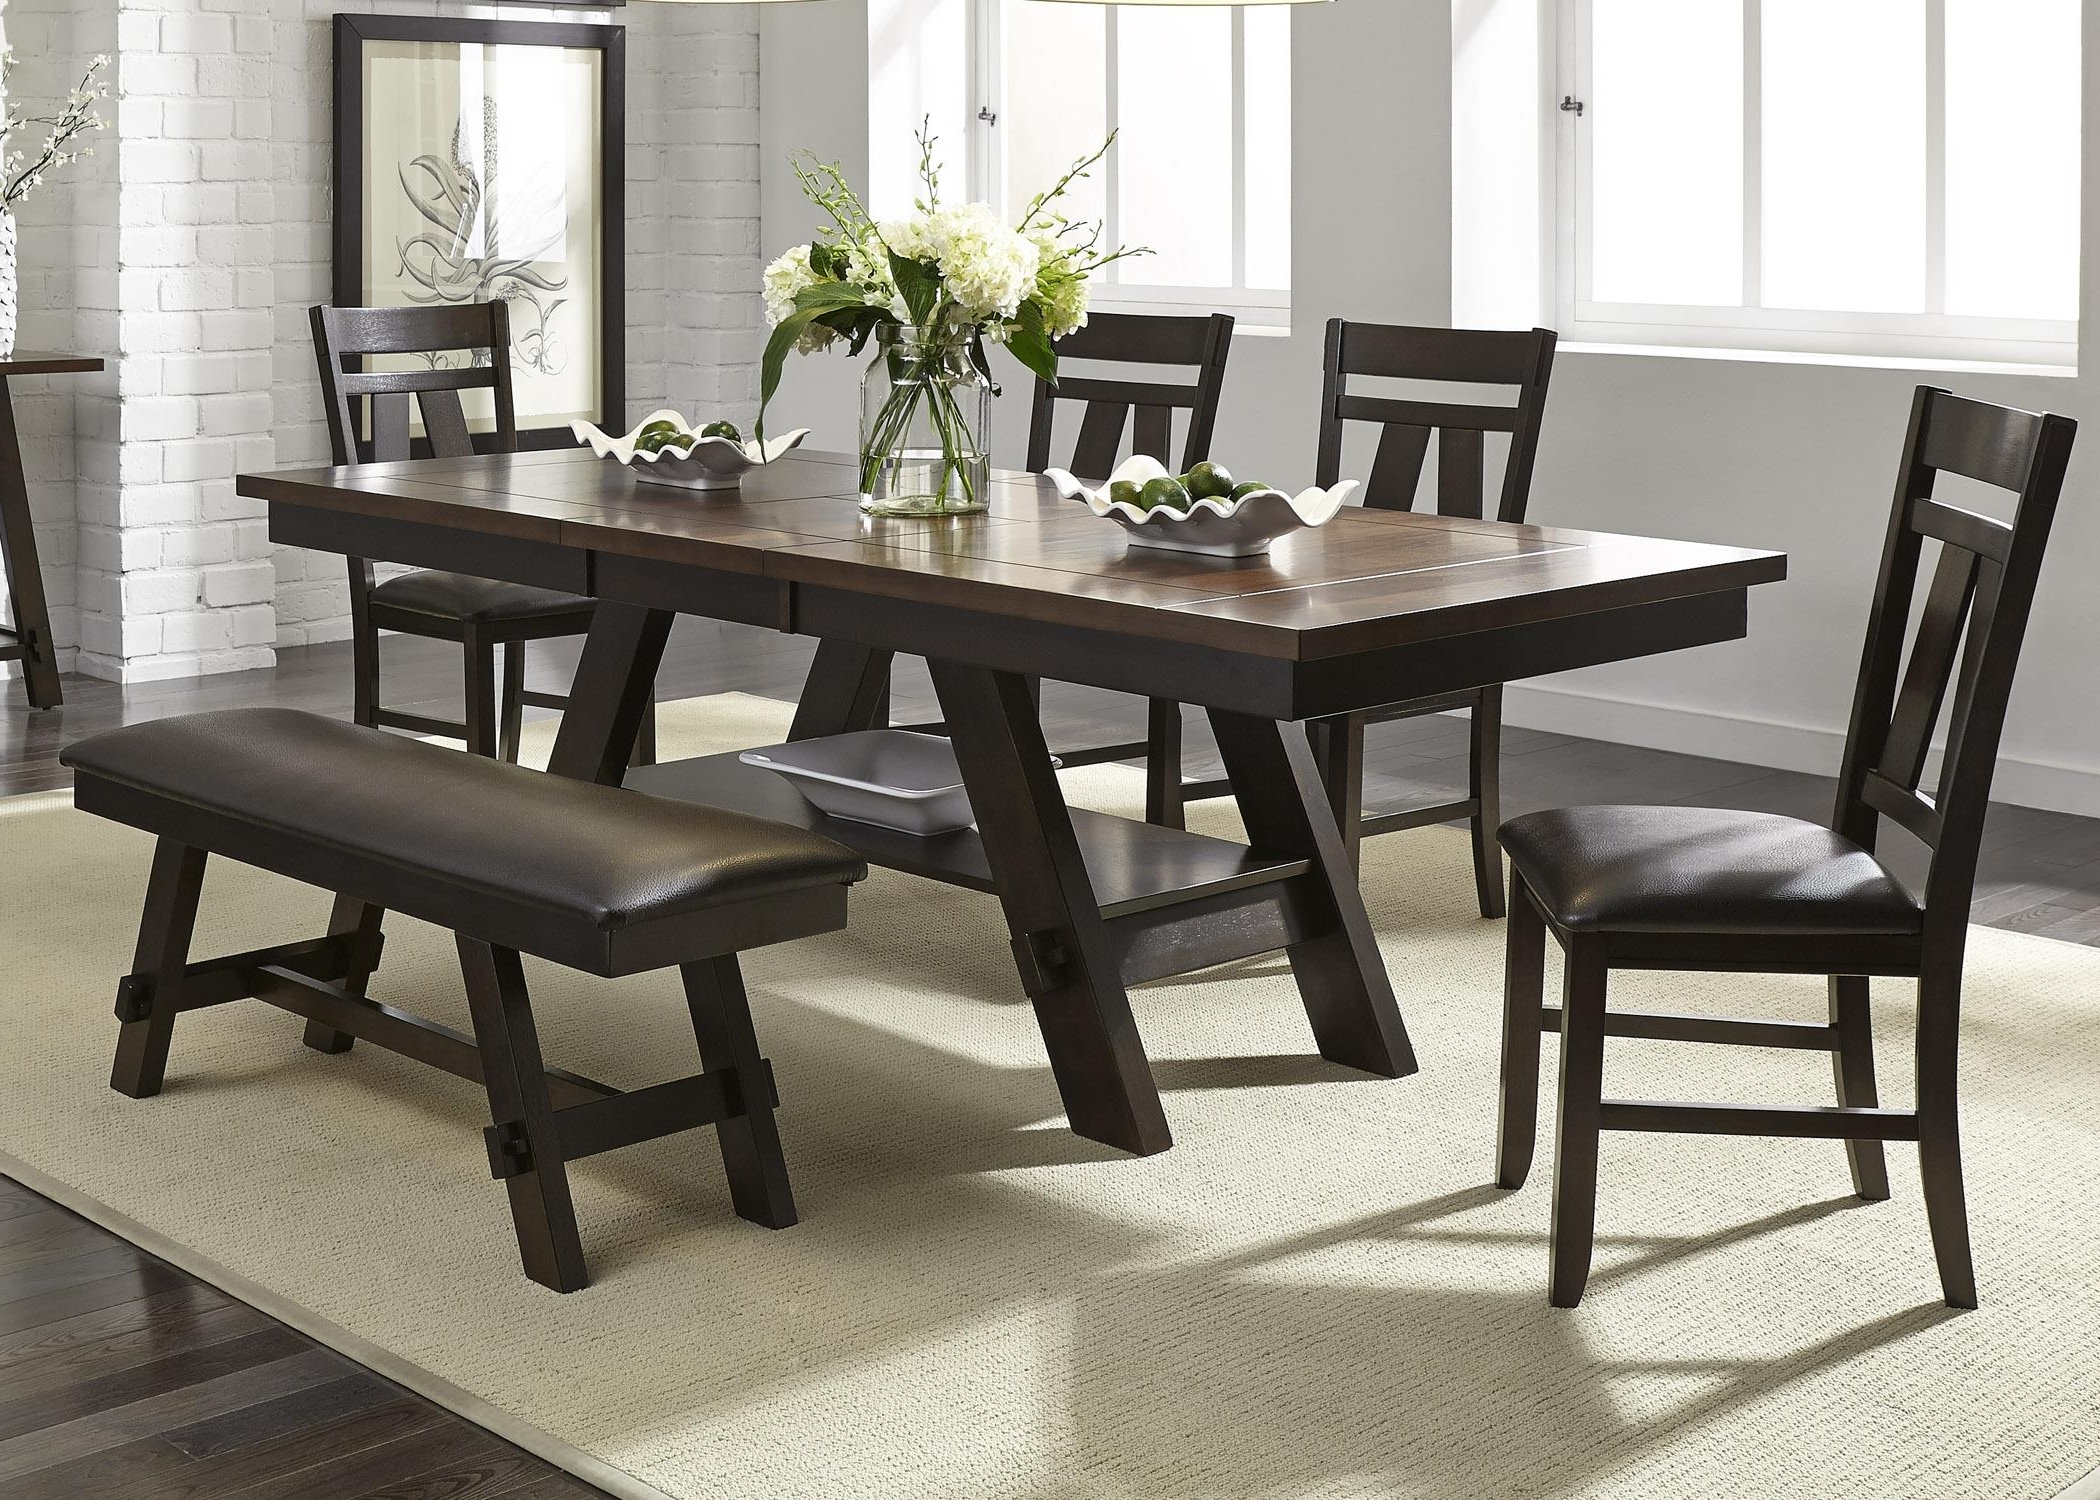 Patterson 6 Piece Dining Sets Within Most Up To Date Dinning Room (View 9 of 25)